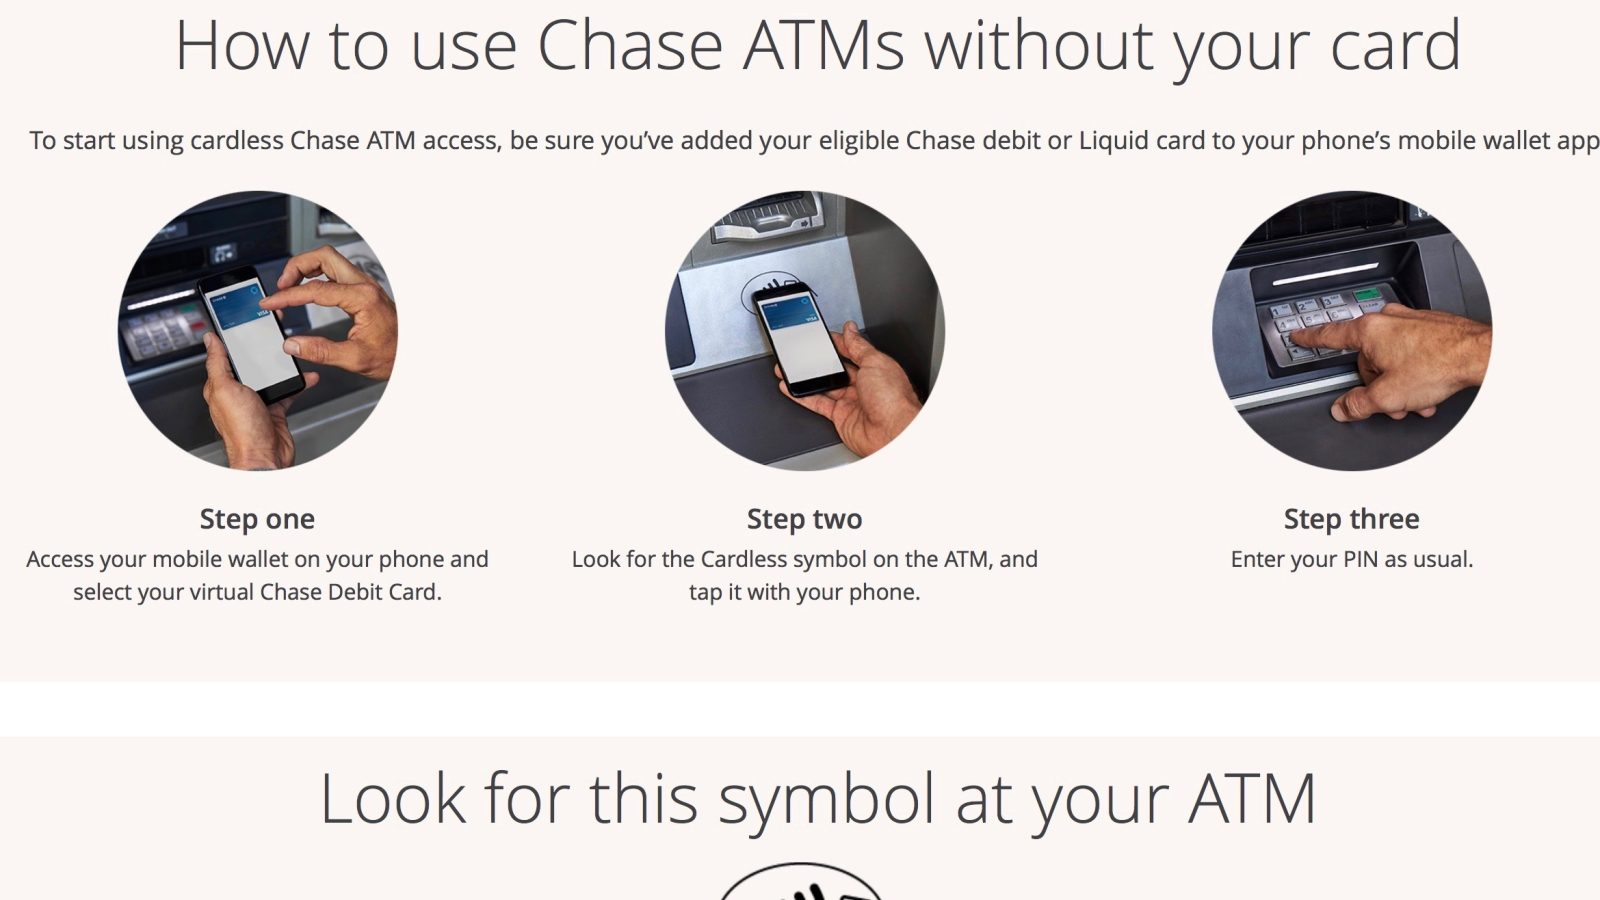 Chase cardless Apple Pay support now live at nearly 16,000 ATMs